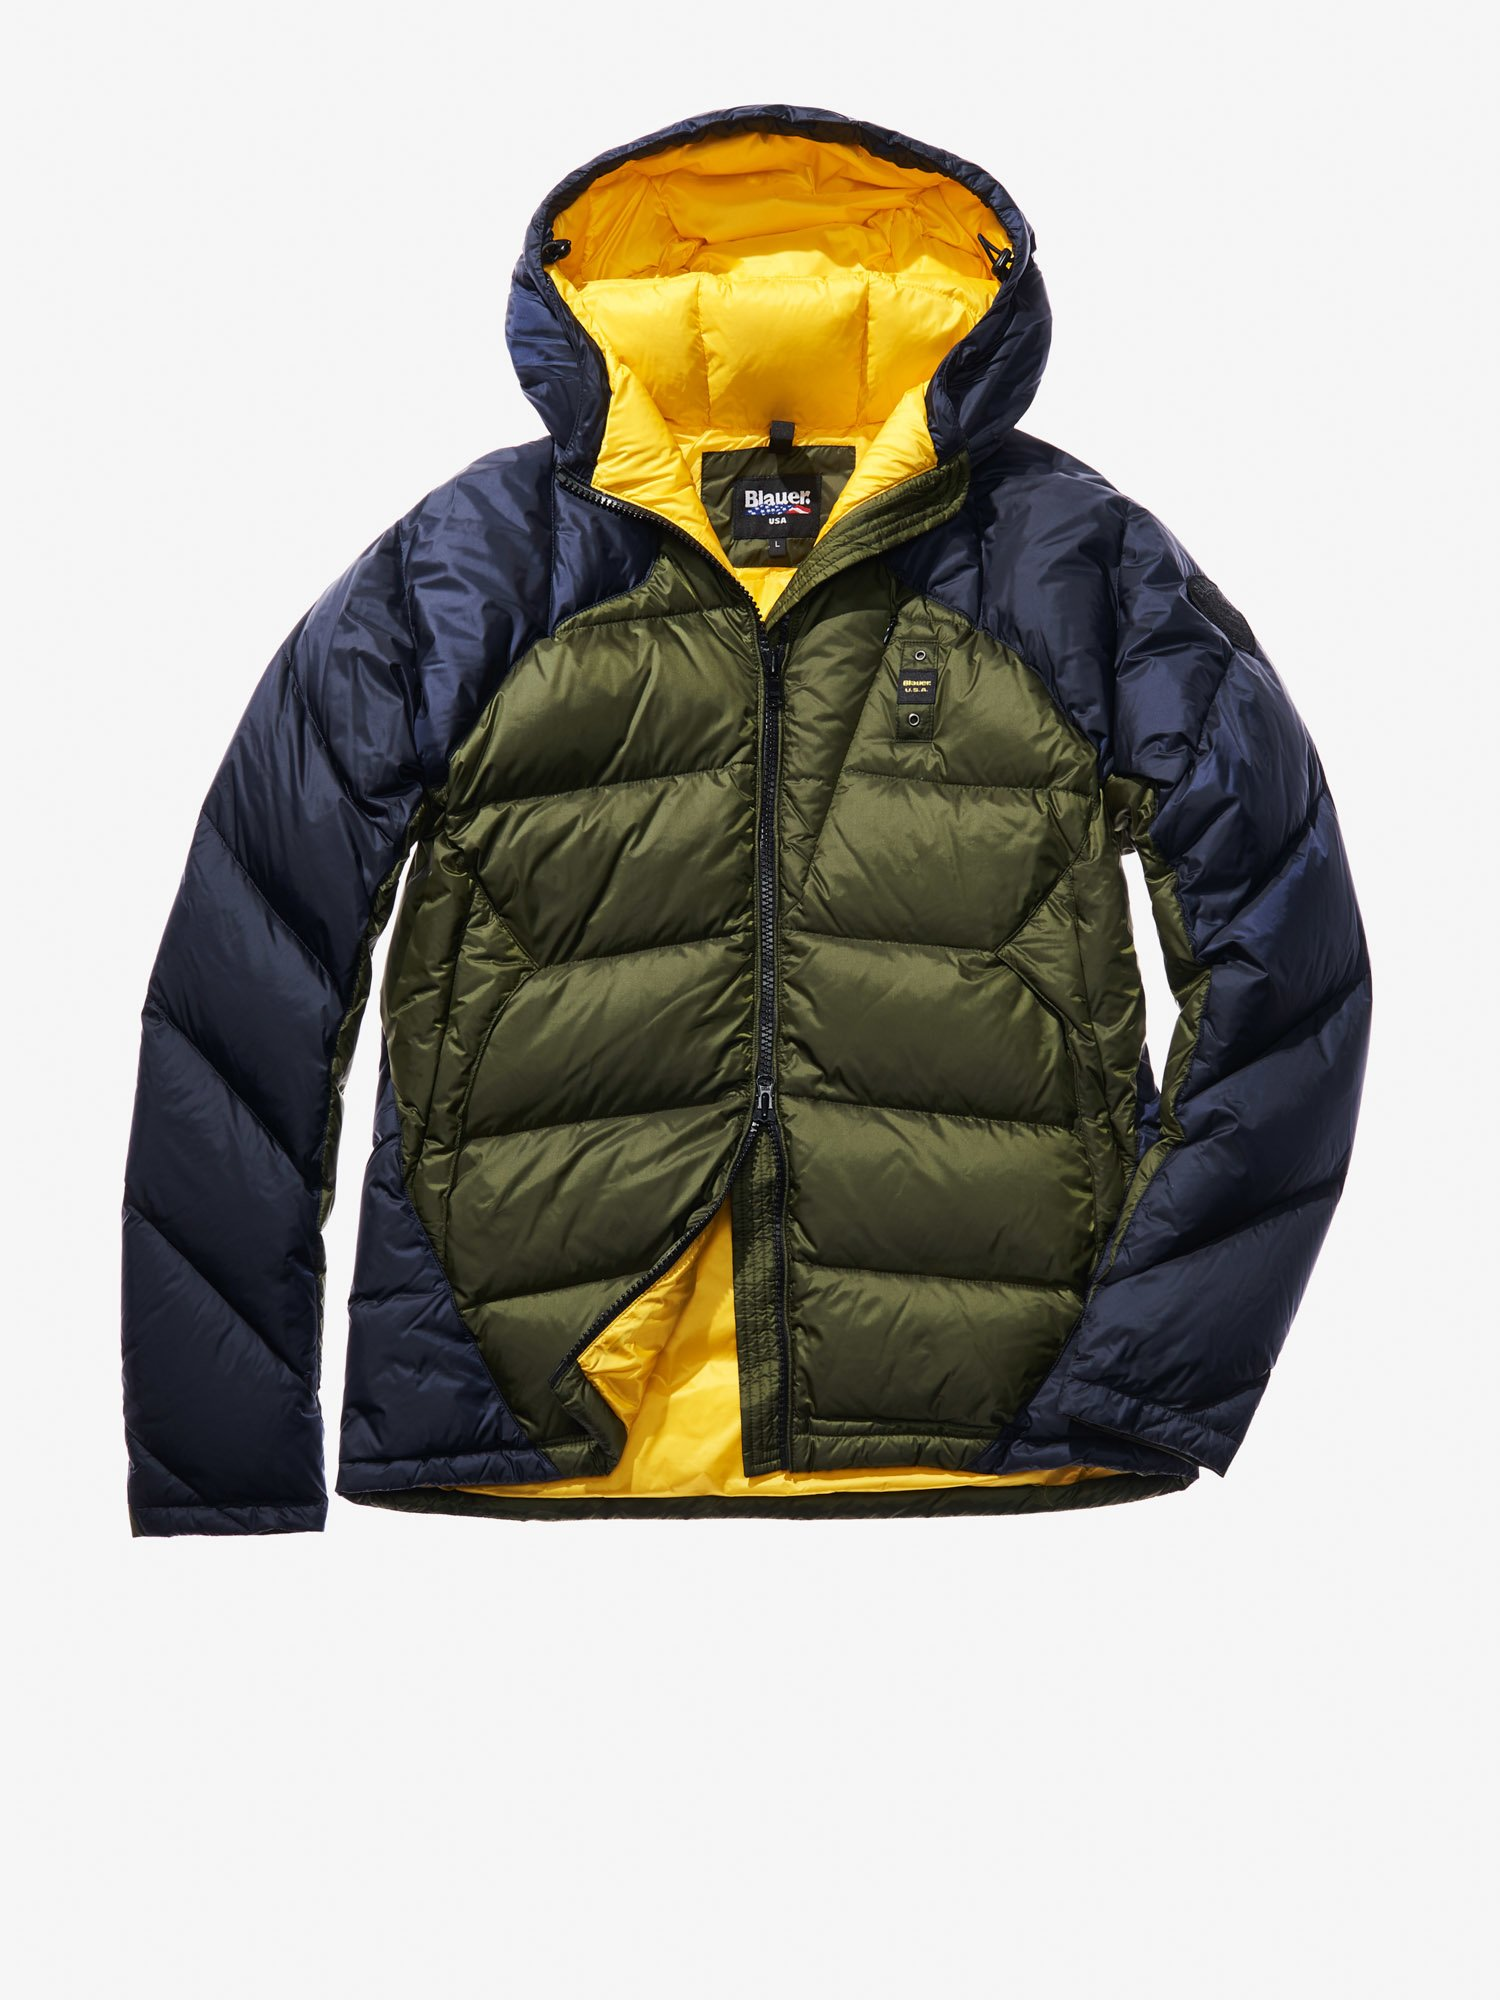 DIEGO TWO-TONE DOWN JACKET - Blauer